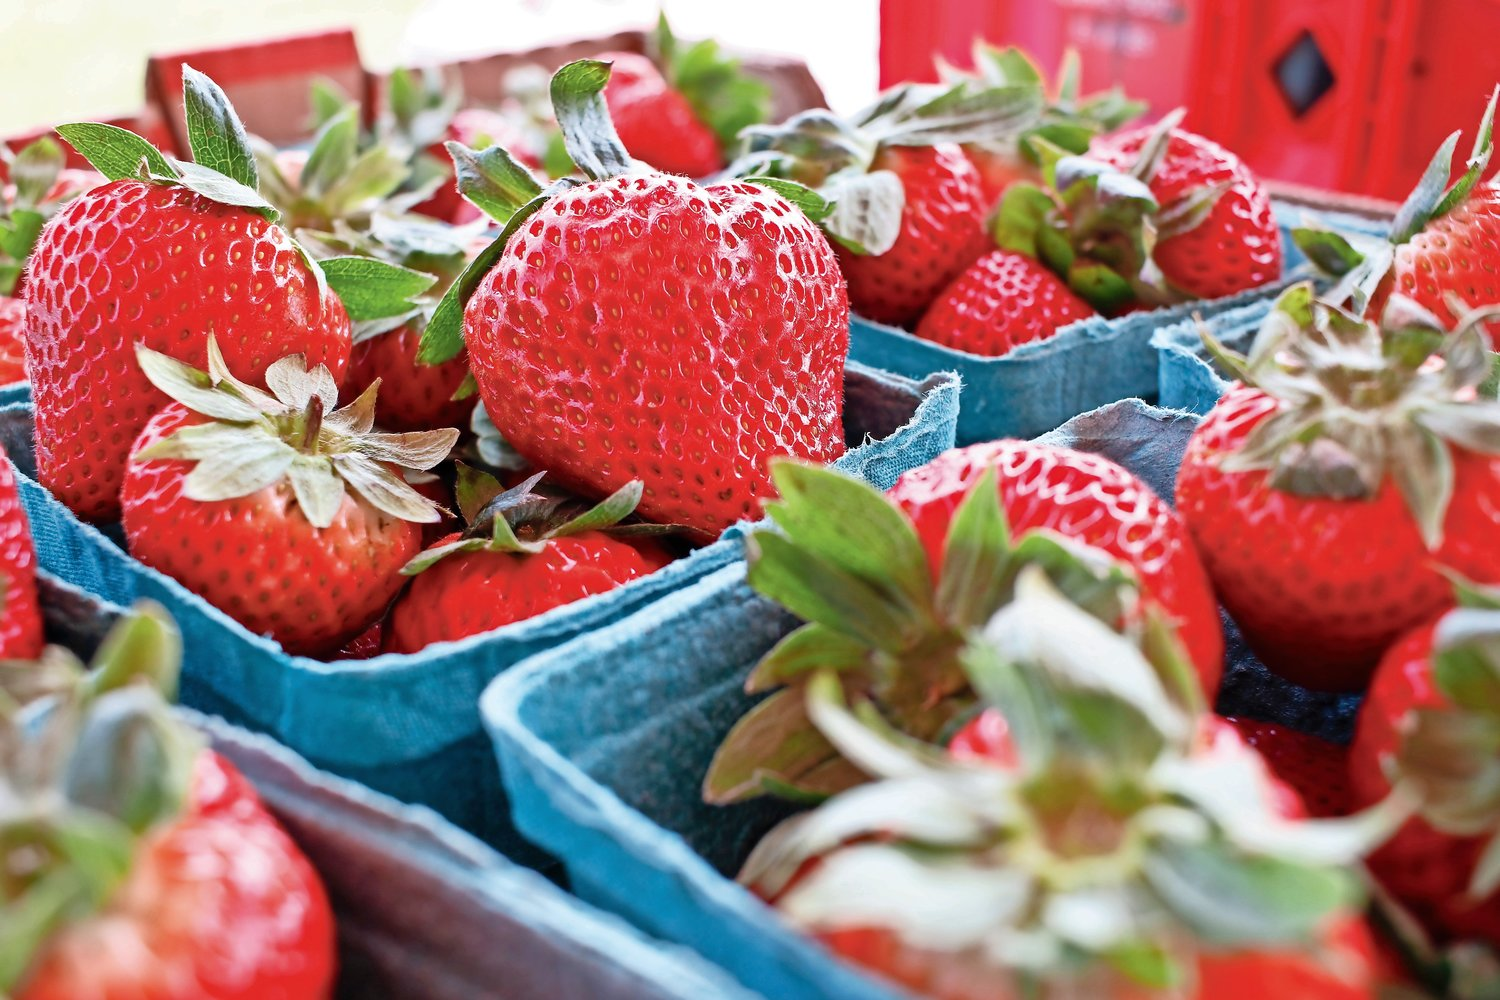 Vibrant and fresh strawberries are always offered in abundance at the annual Strawberry Festival.